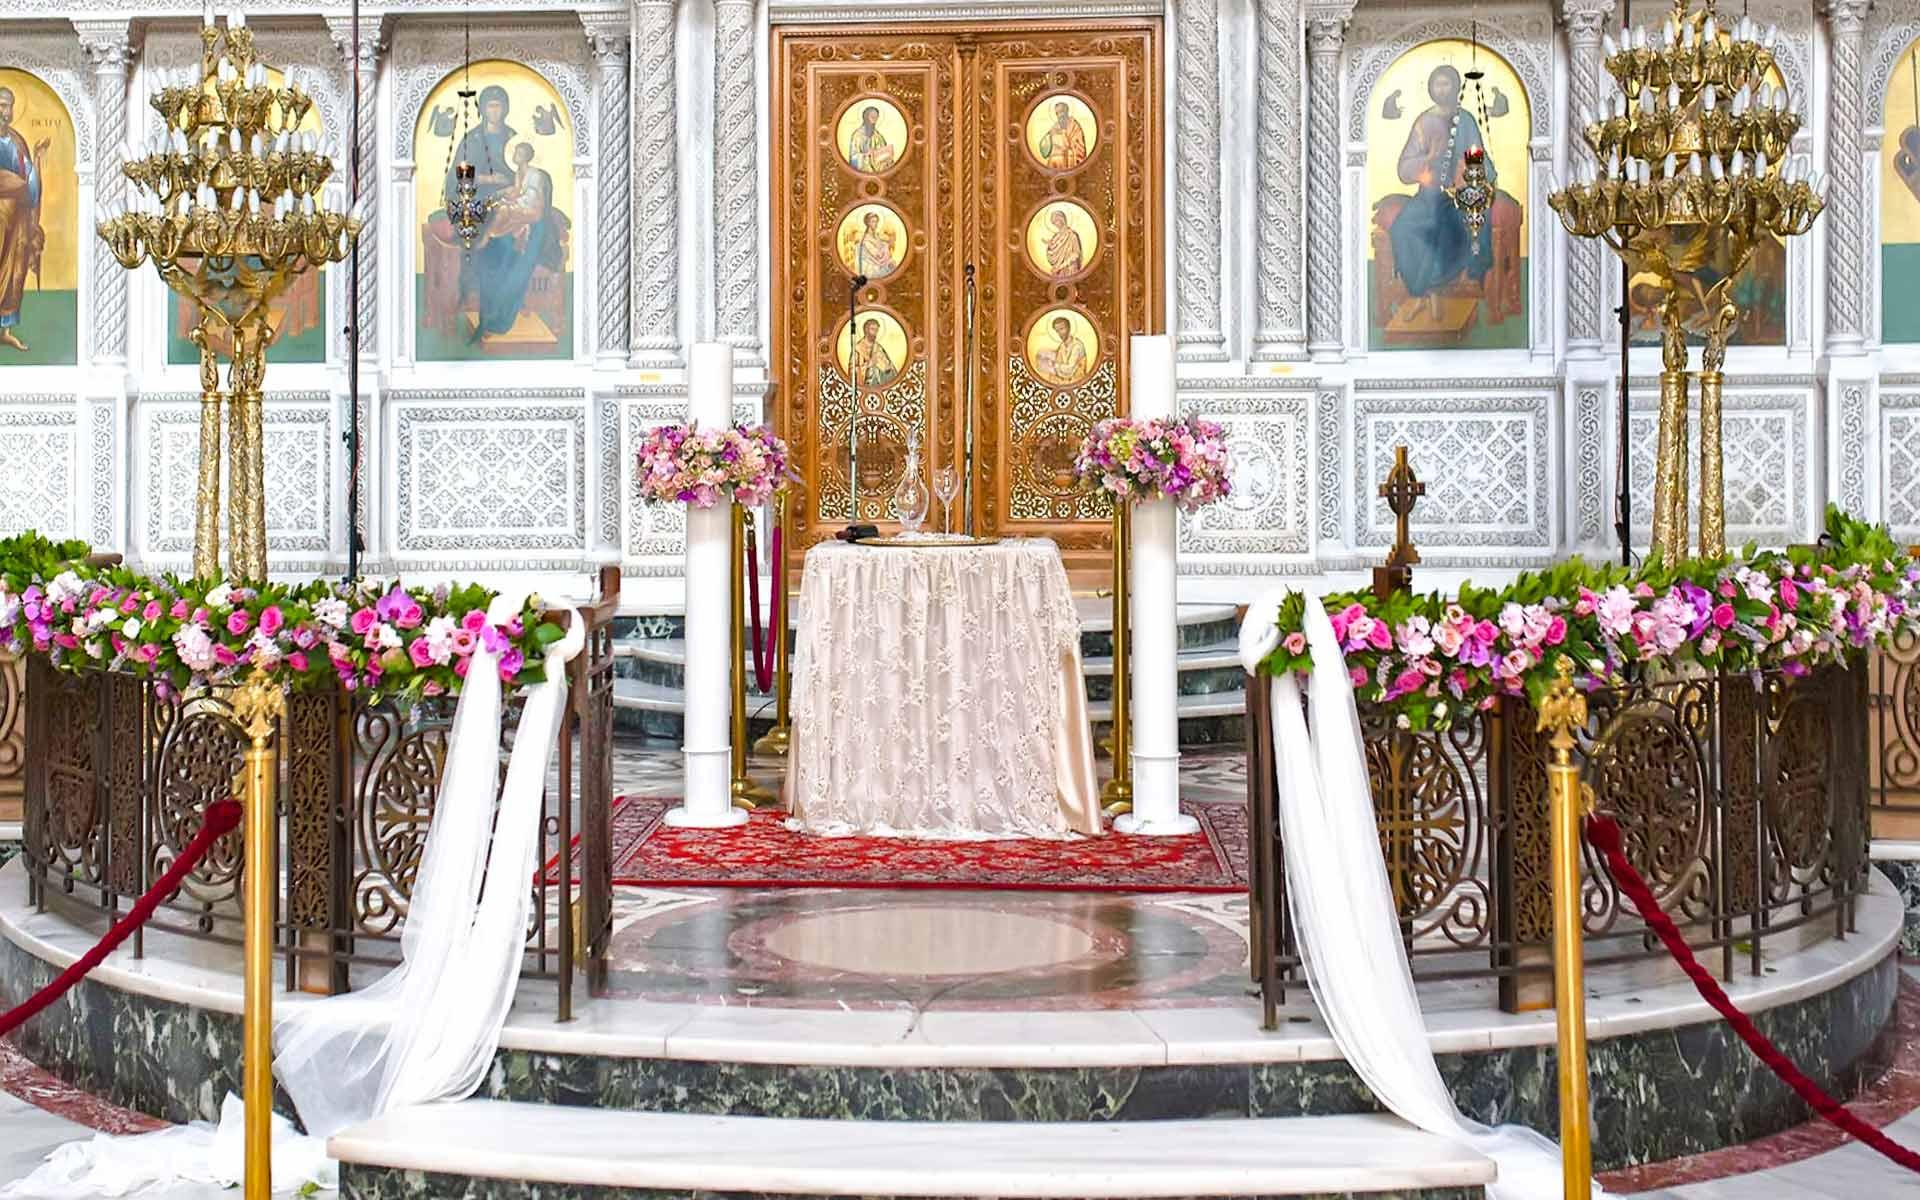 Wedding-decoration-inside-the-church-with-elegant-colorfoul-flowers